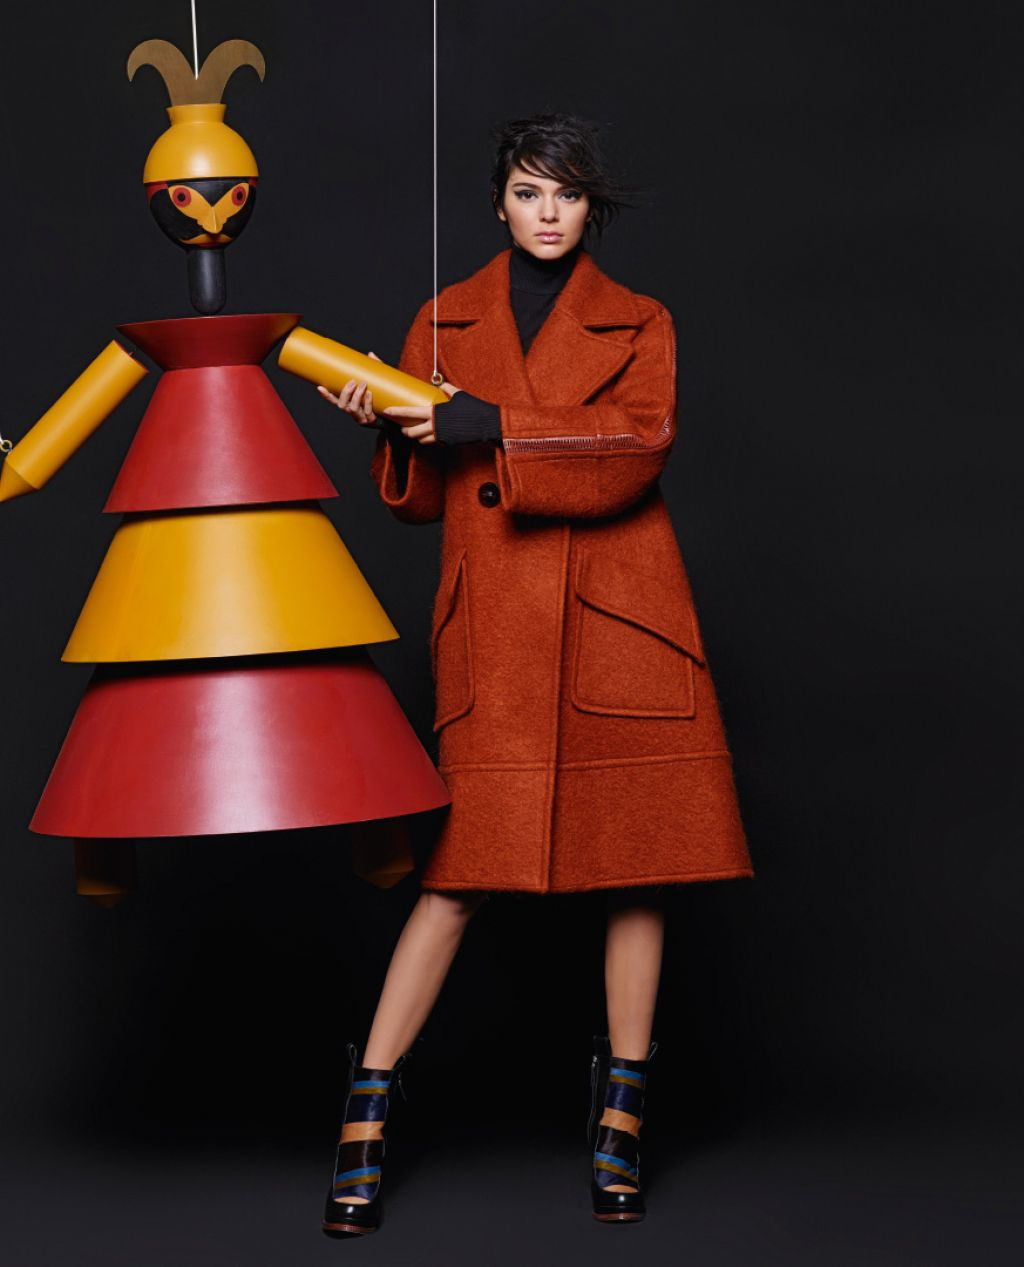 kendall-jenner-fendi-fall-winter-2015-ad-campaign_4